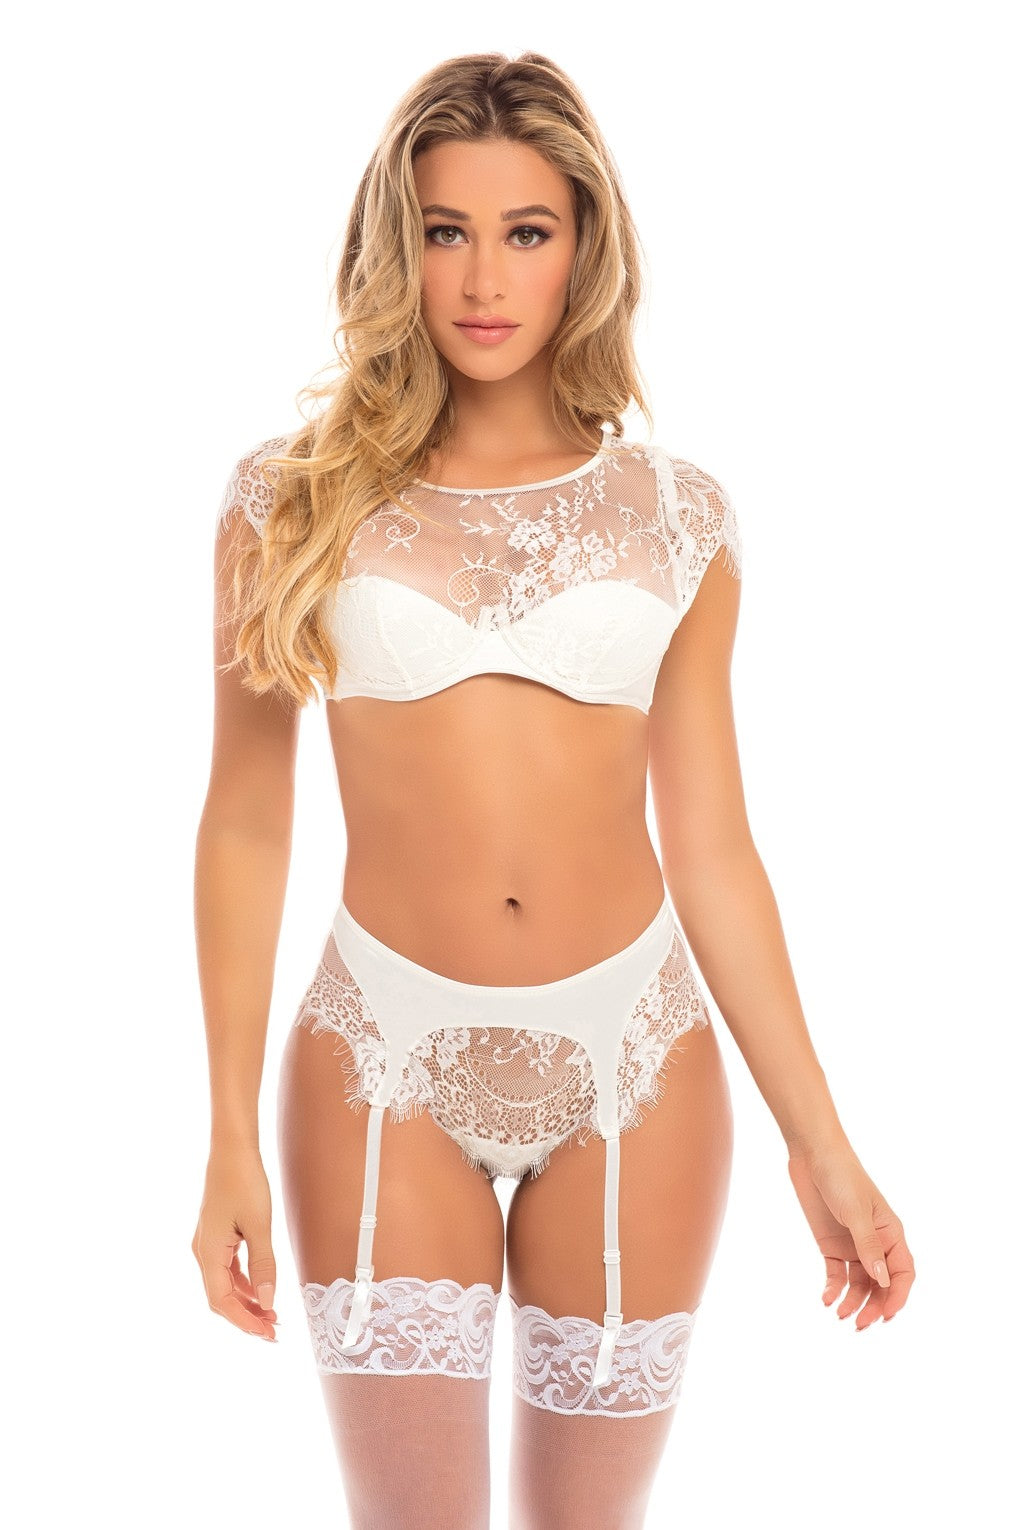 The Isabel Bridal Eyelash Crop Top and Knicker